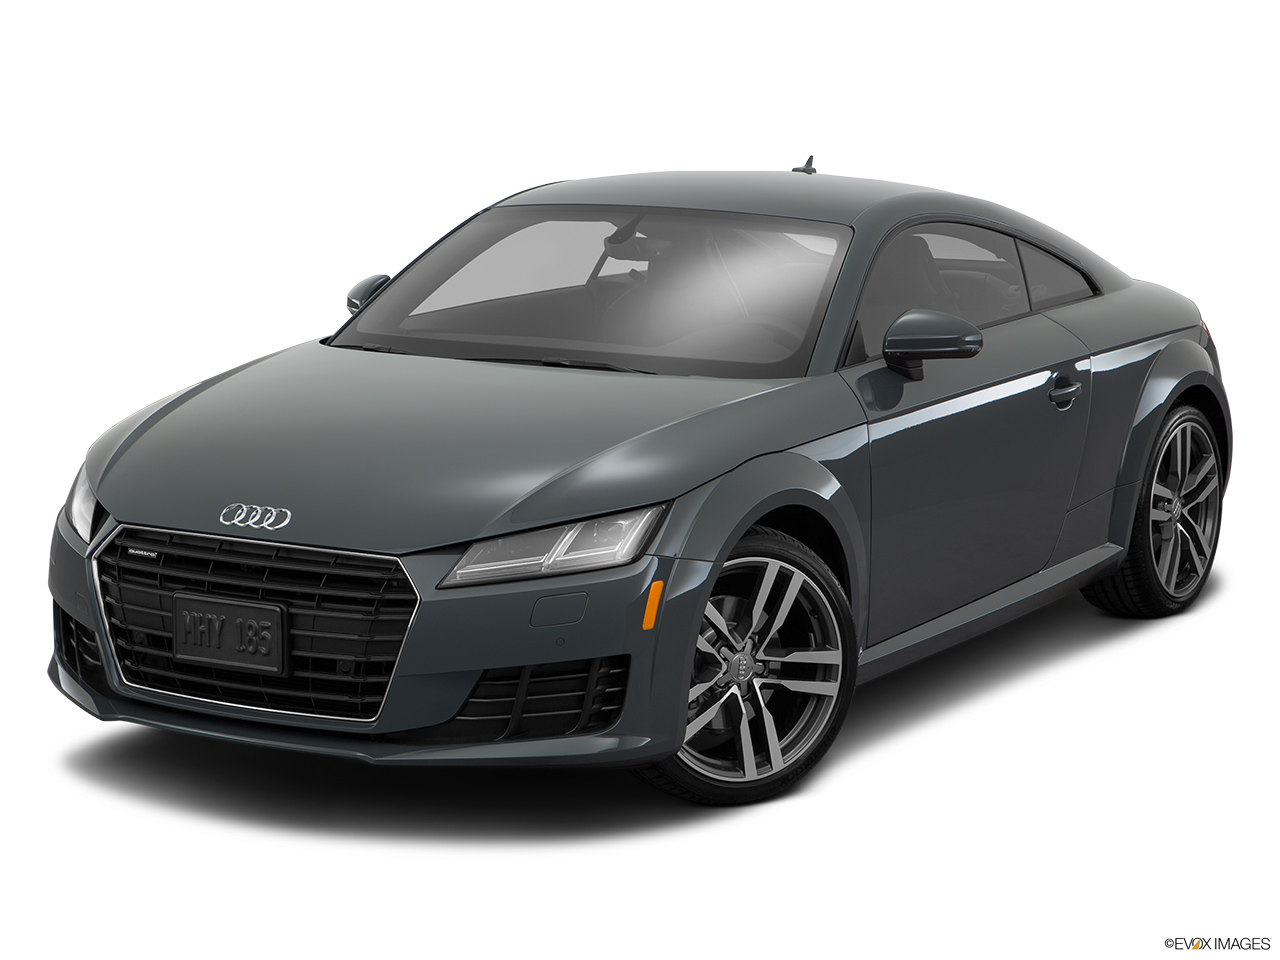 audi tt 2018 45 tfsi quattro 230 hp in uae new car prices. Black Bedroom Furniture Sets. Home Design Ideas